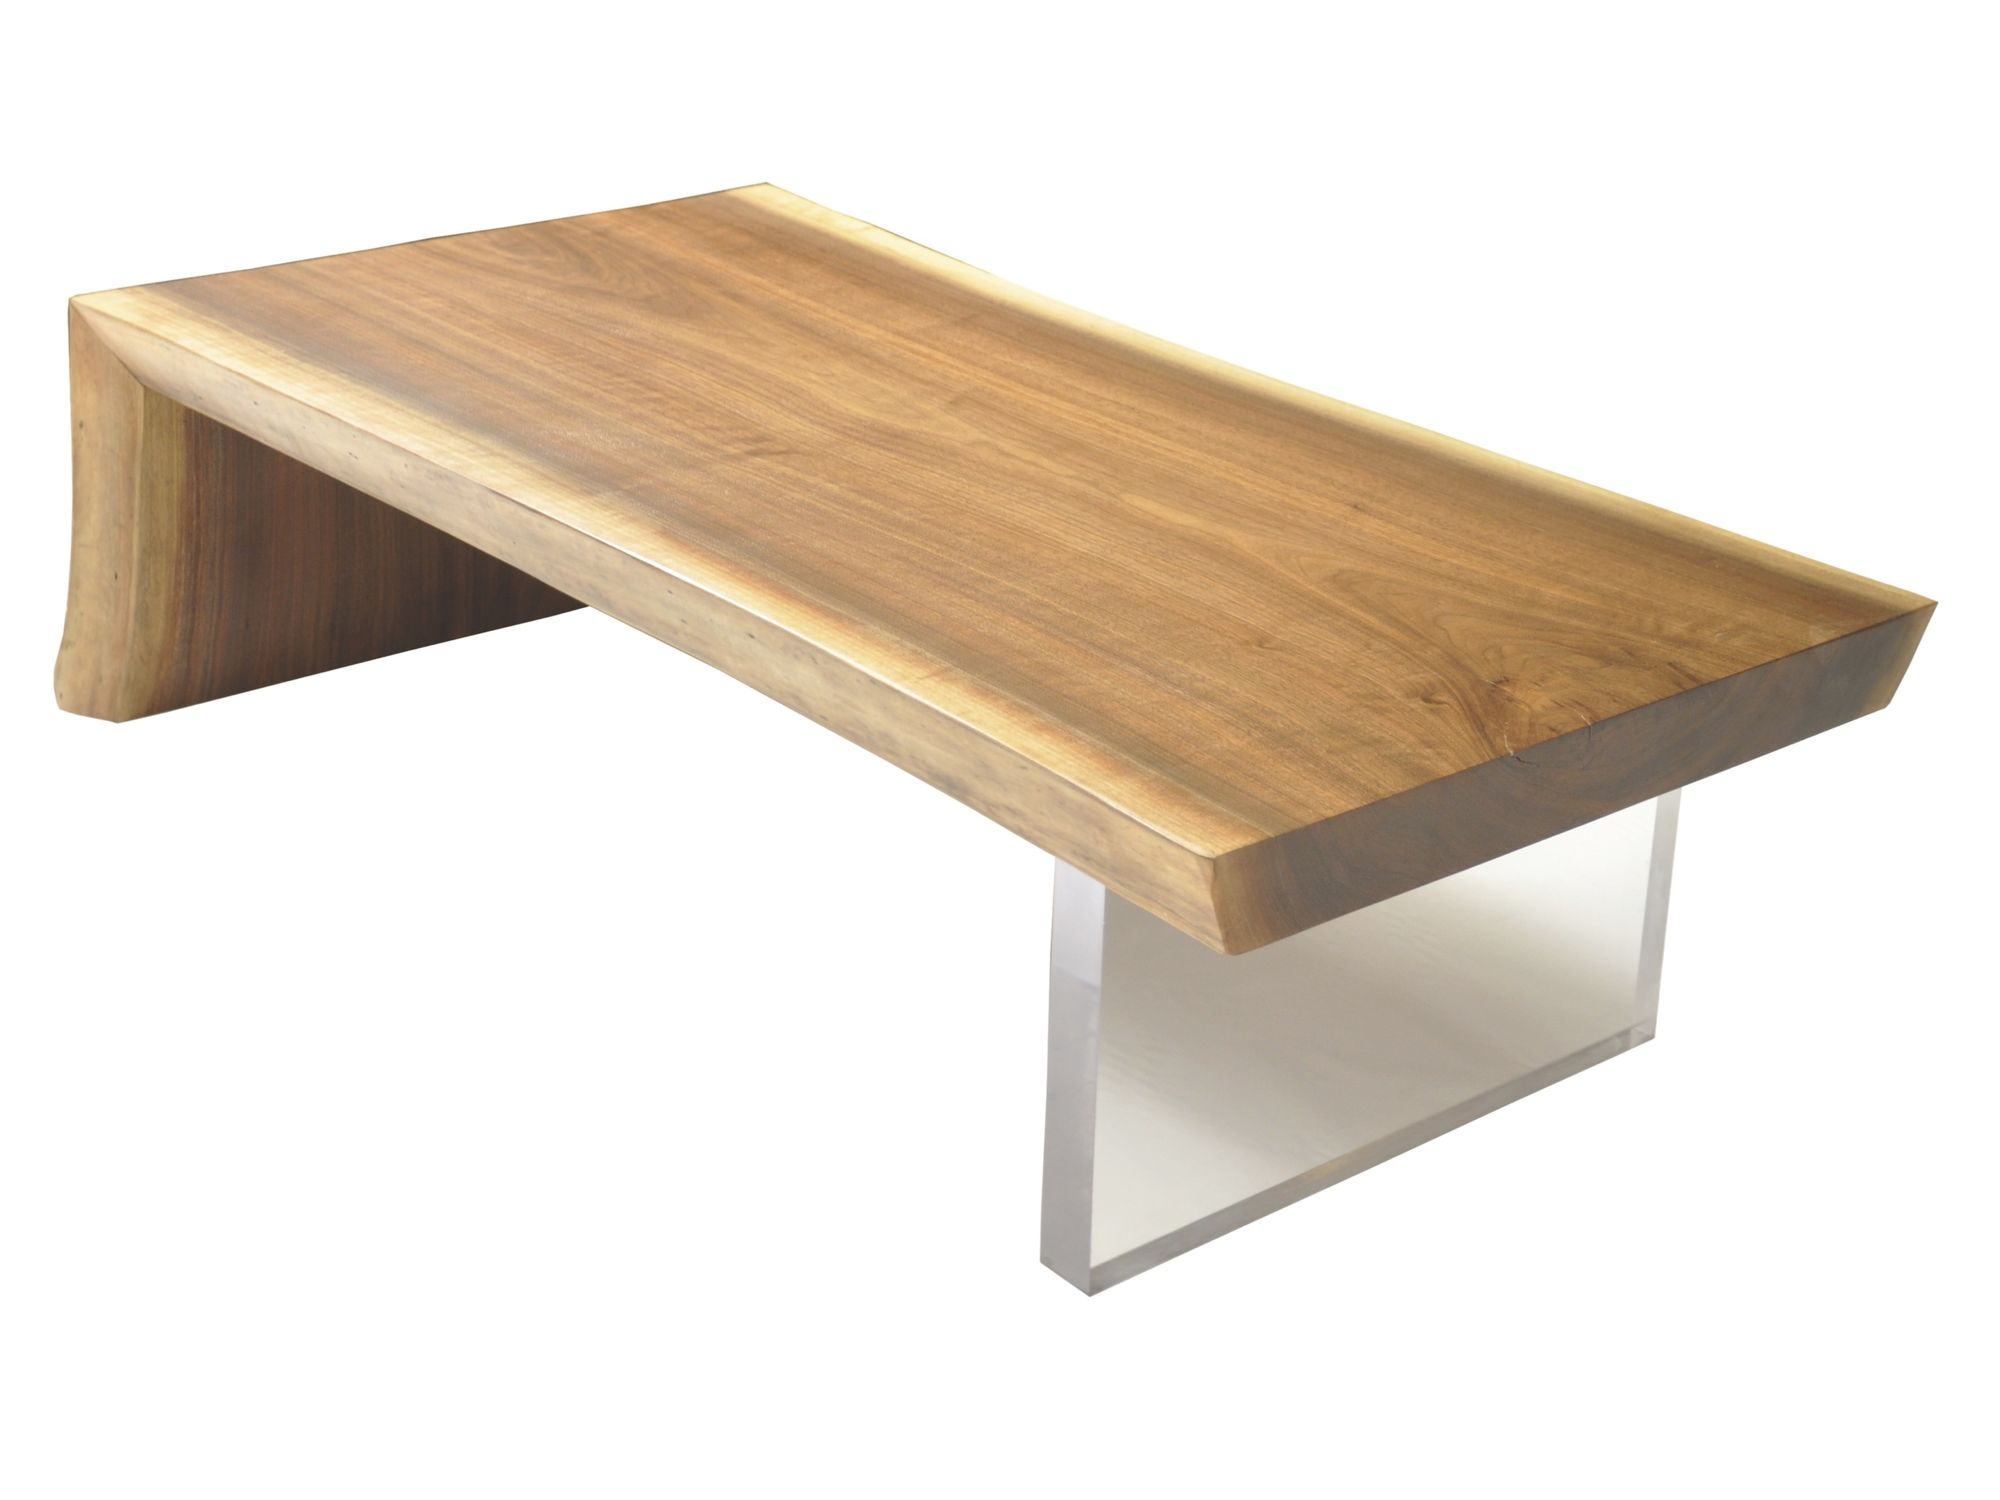 Contemporary Coffee Table Raw Edge Walnut Slab Rotsen Furniture Wooden Rectangular In Reclaimed Material